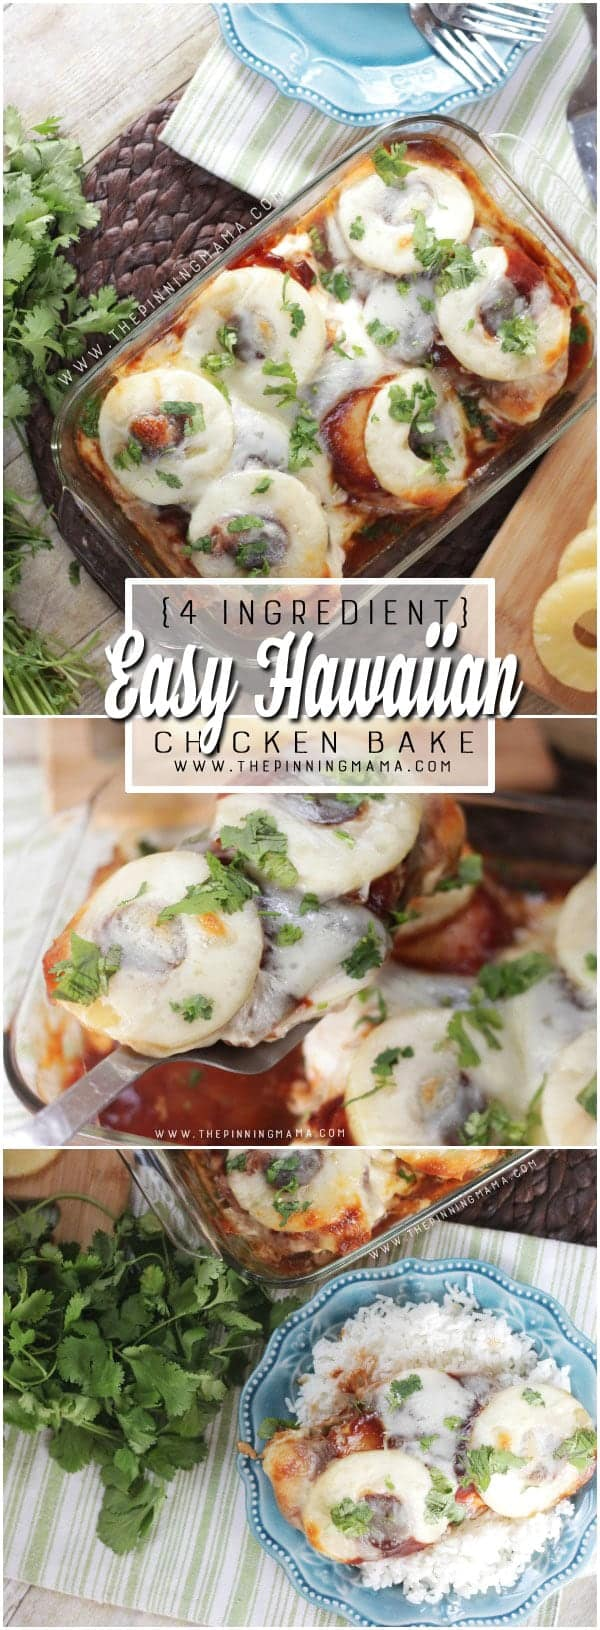 Hawaiian chicken bake recipe easy dinner idea the pinning mama easy healthy best dinner ever hawaiian chicken bake recipe i love the forumfinder Image collections